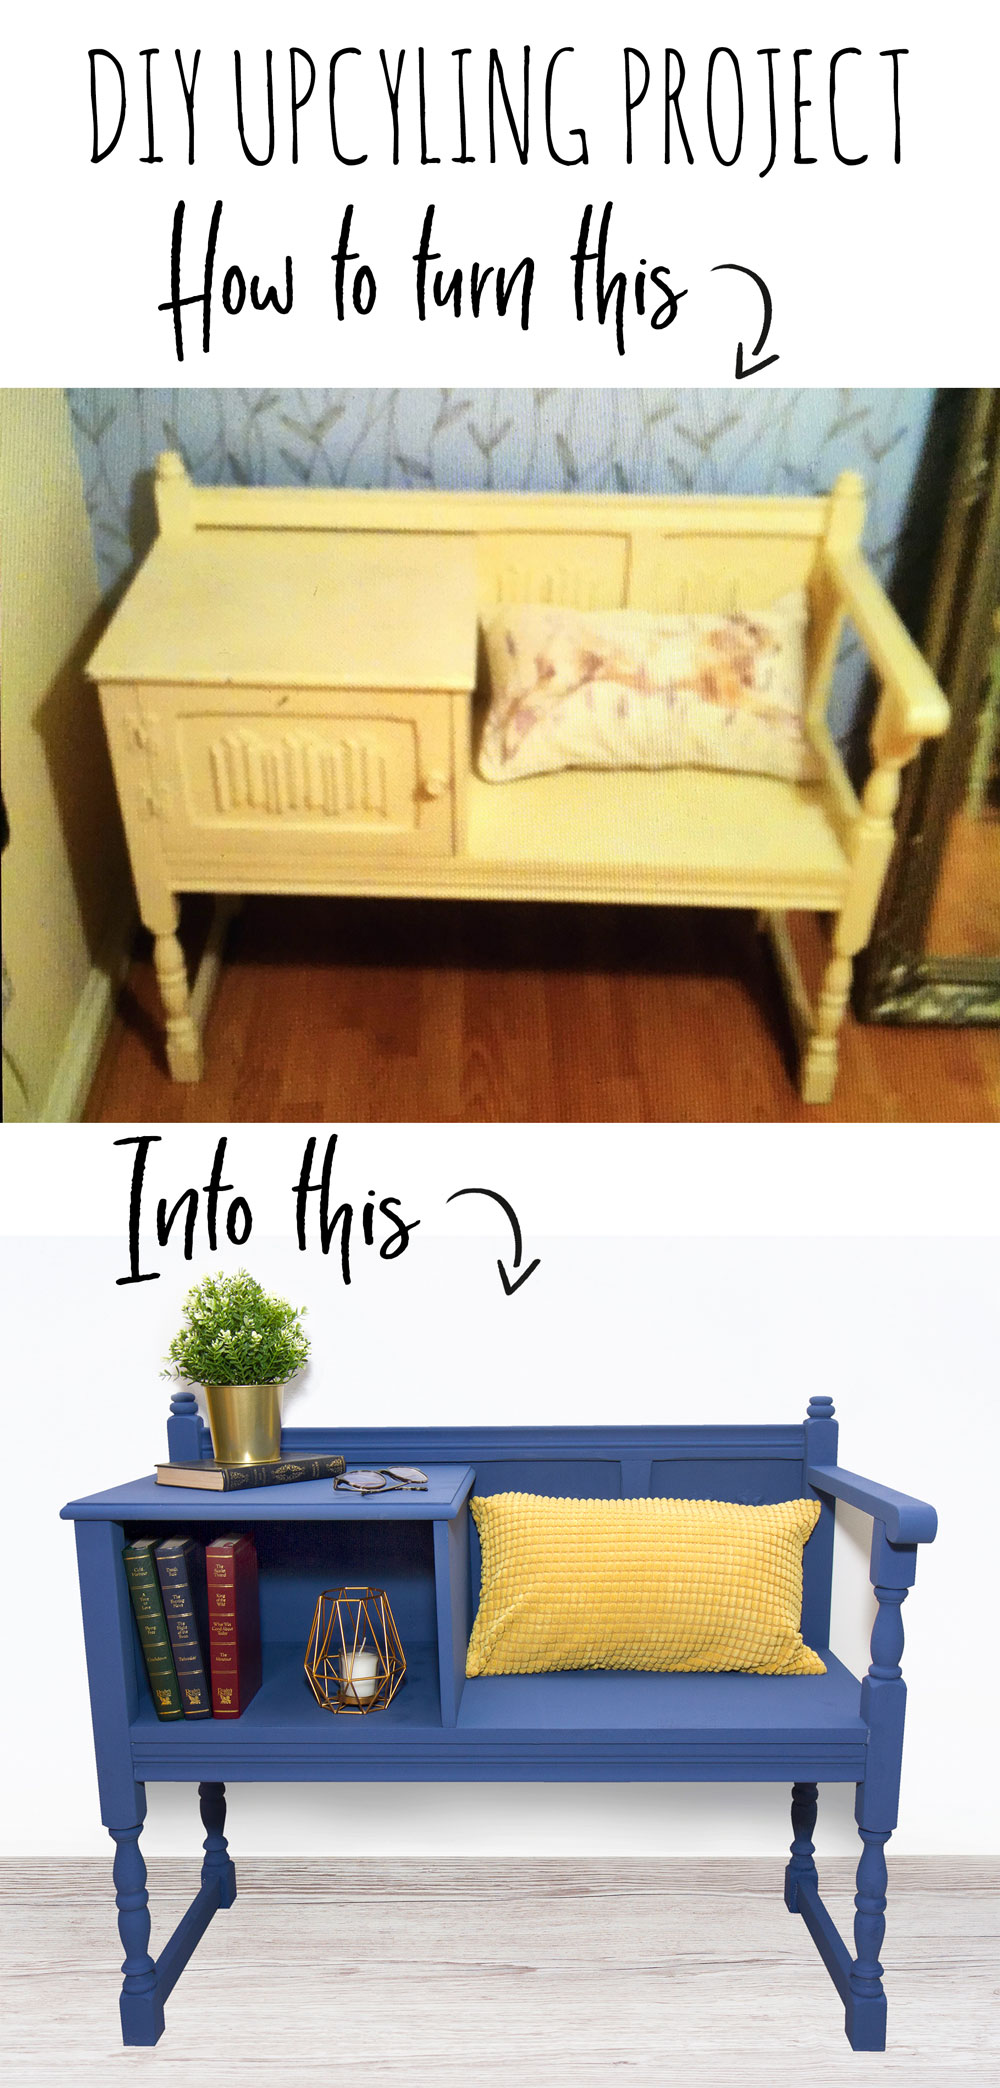 Upcycled-telephone-table-reading-nook-DIY-pin.jpg